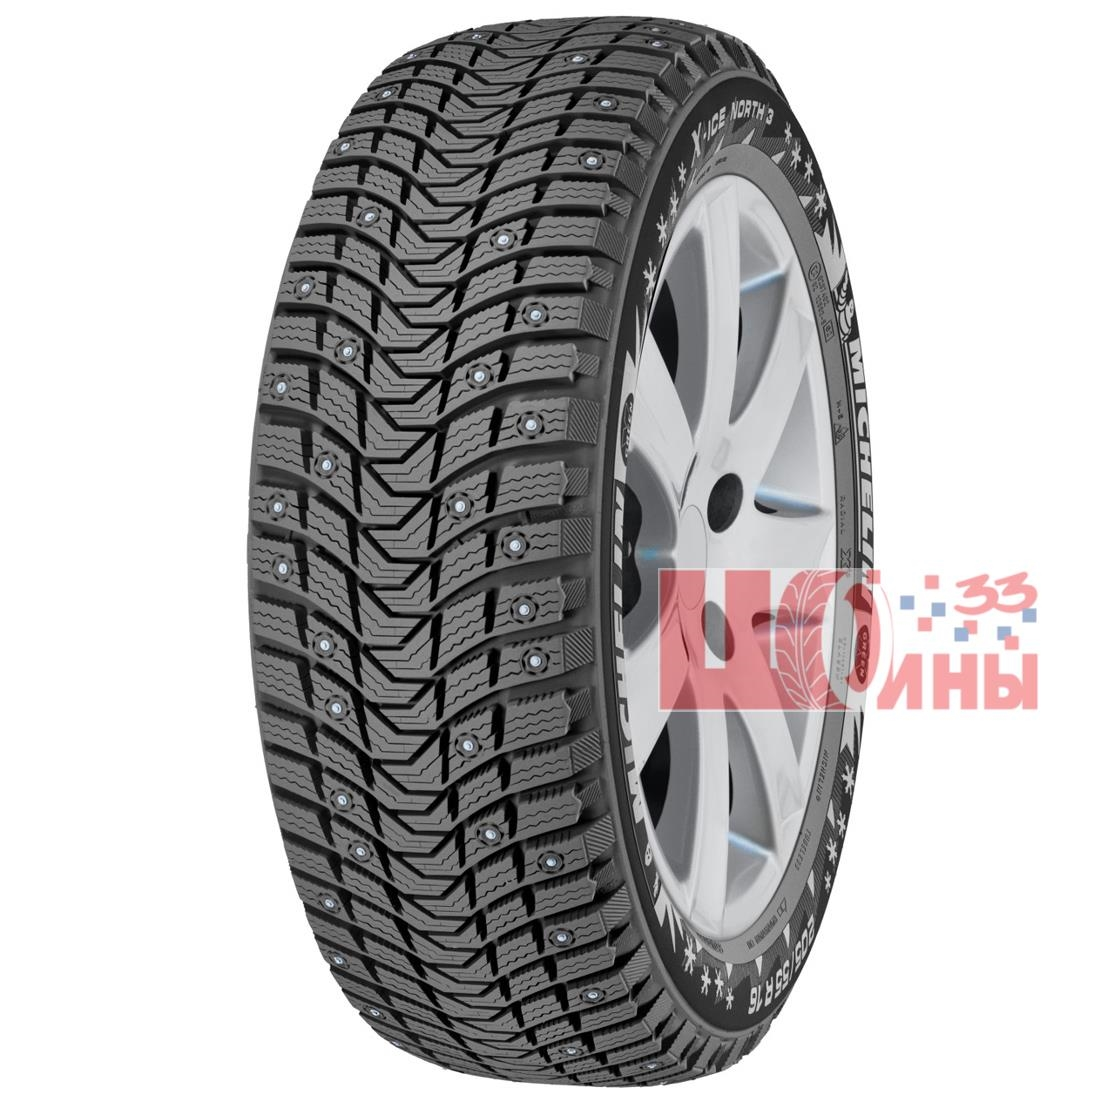 Б/У 225/45 R17 Зима Шипы  MICHELIN X-Ice North-3 Кат. 3